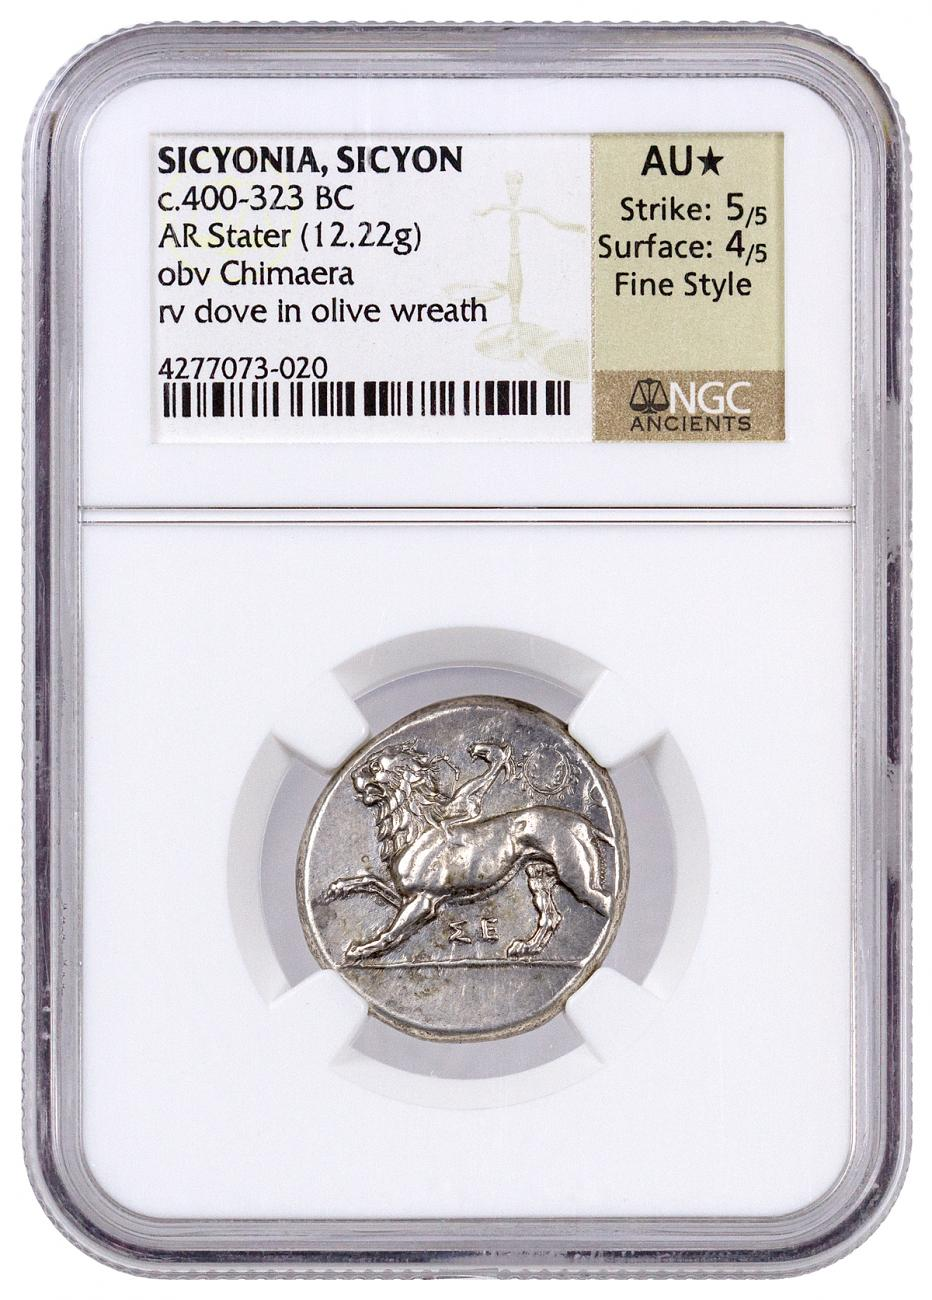 Greek City-State of Sicyon Silver Stater - Chimaera and Dove in Olive Wreath c. 400-232 BC - NGC AU* (Strike: 5/5 - Surface: 4/5)